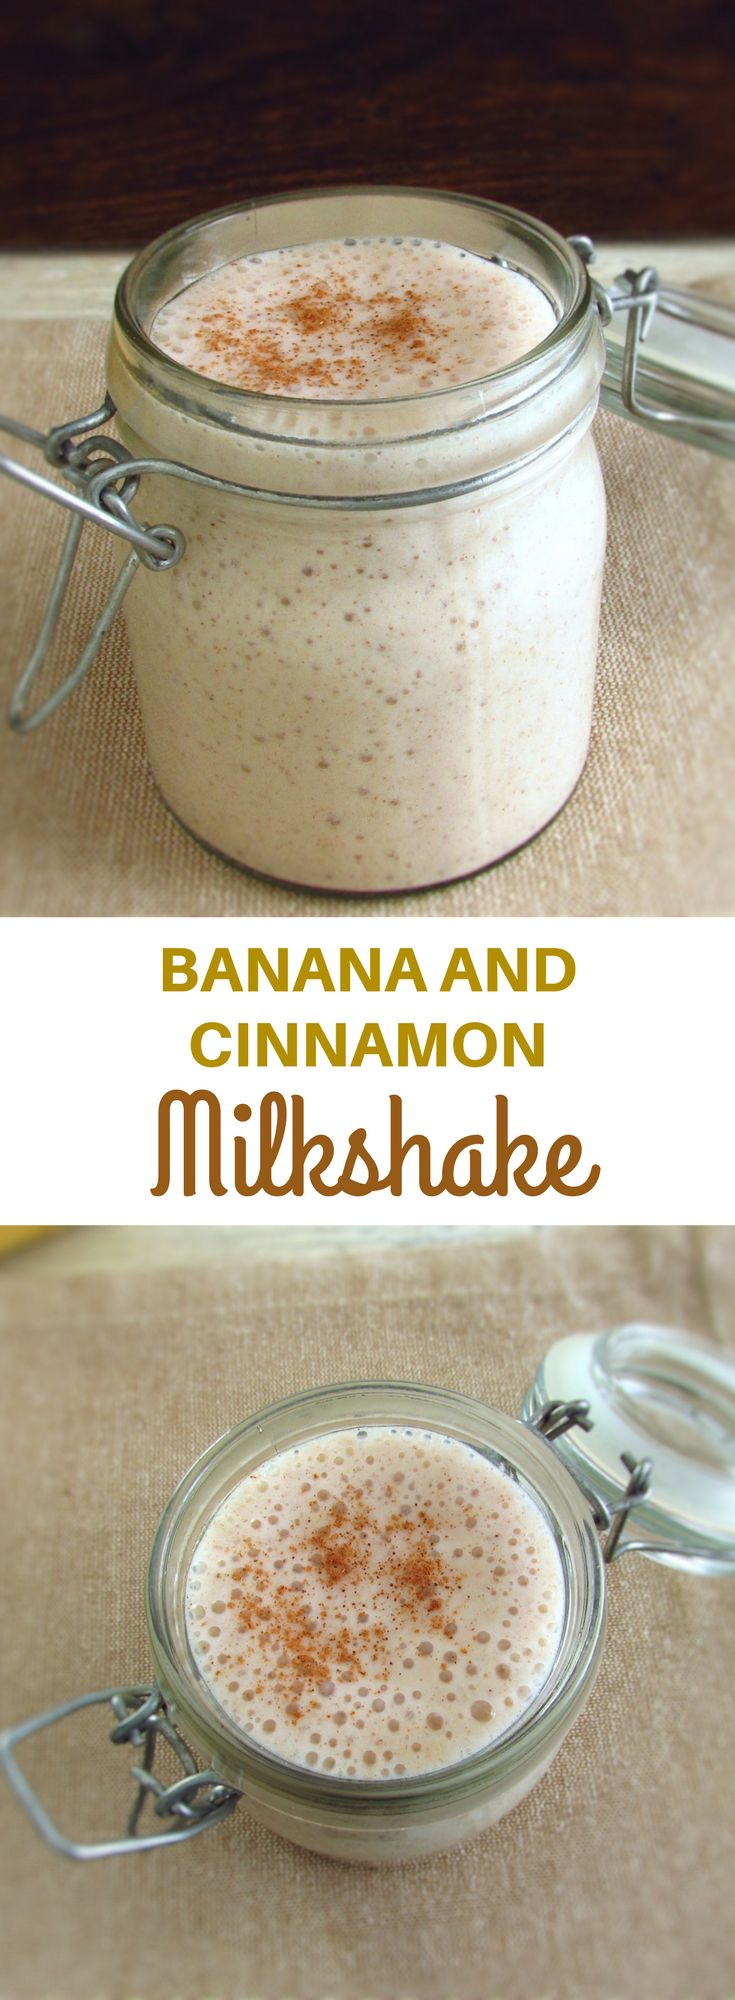 Banana and cinnamon milkshake   Food From Portugal. After exercise, want to recharge your energy levels and drink a tasty drink? Prepare this banana and cinnamon milkshake, it's the perfect solution! #drink #milkshake #banana #recipe